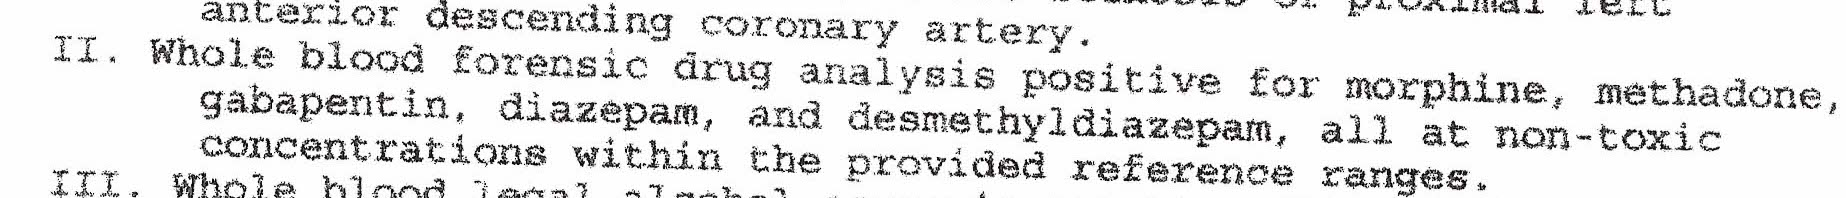 autopsy report scan: whole blood analysis positive for morphine, methadone, gabapentin, diazepam, and desmethyldiazepam, all at non-toxic concentrations.